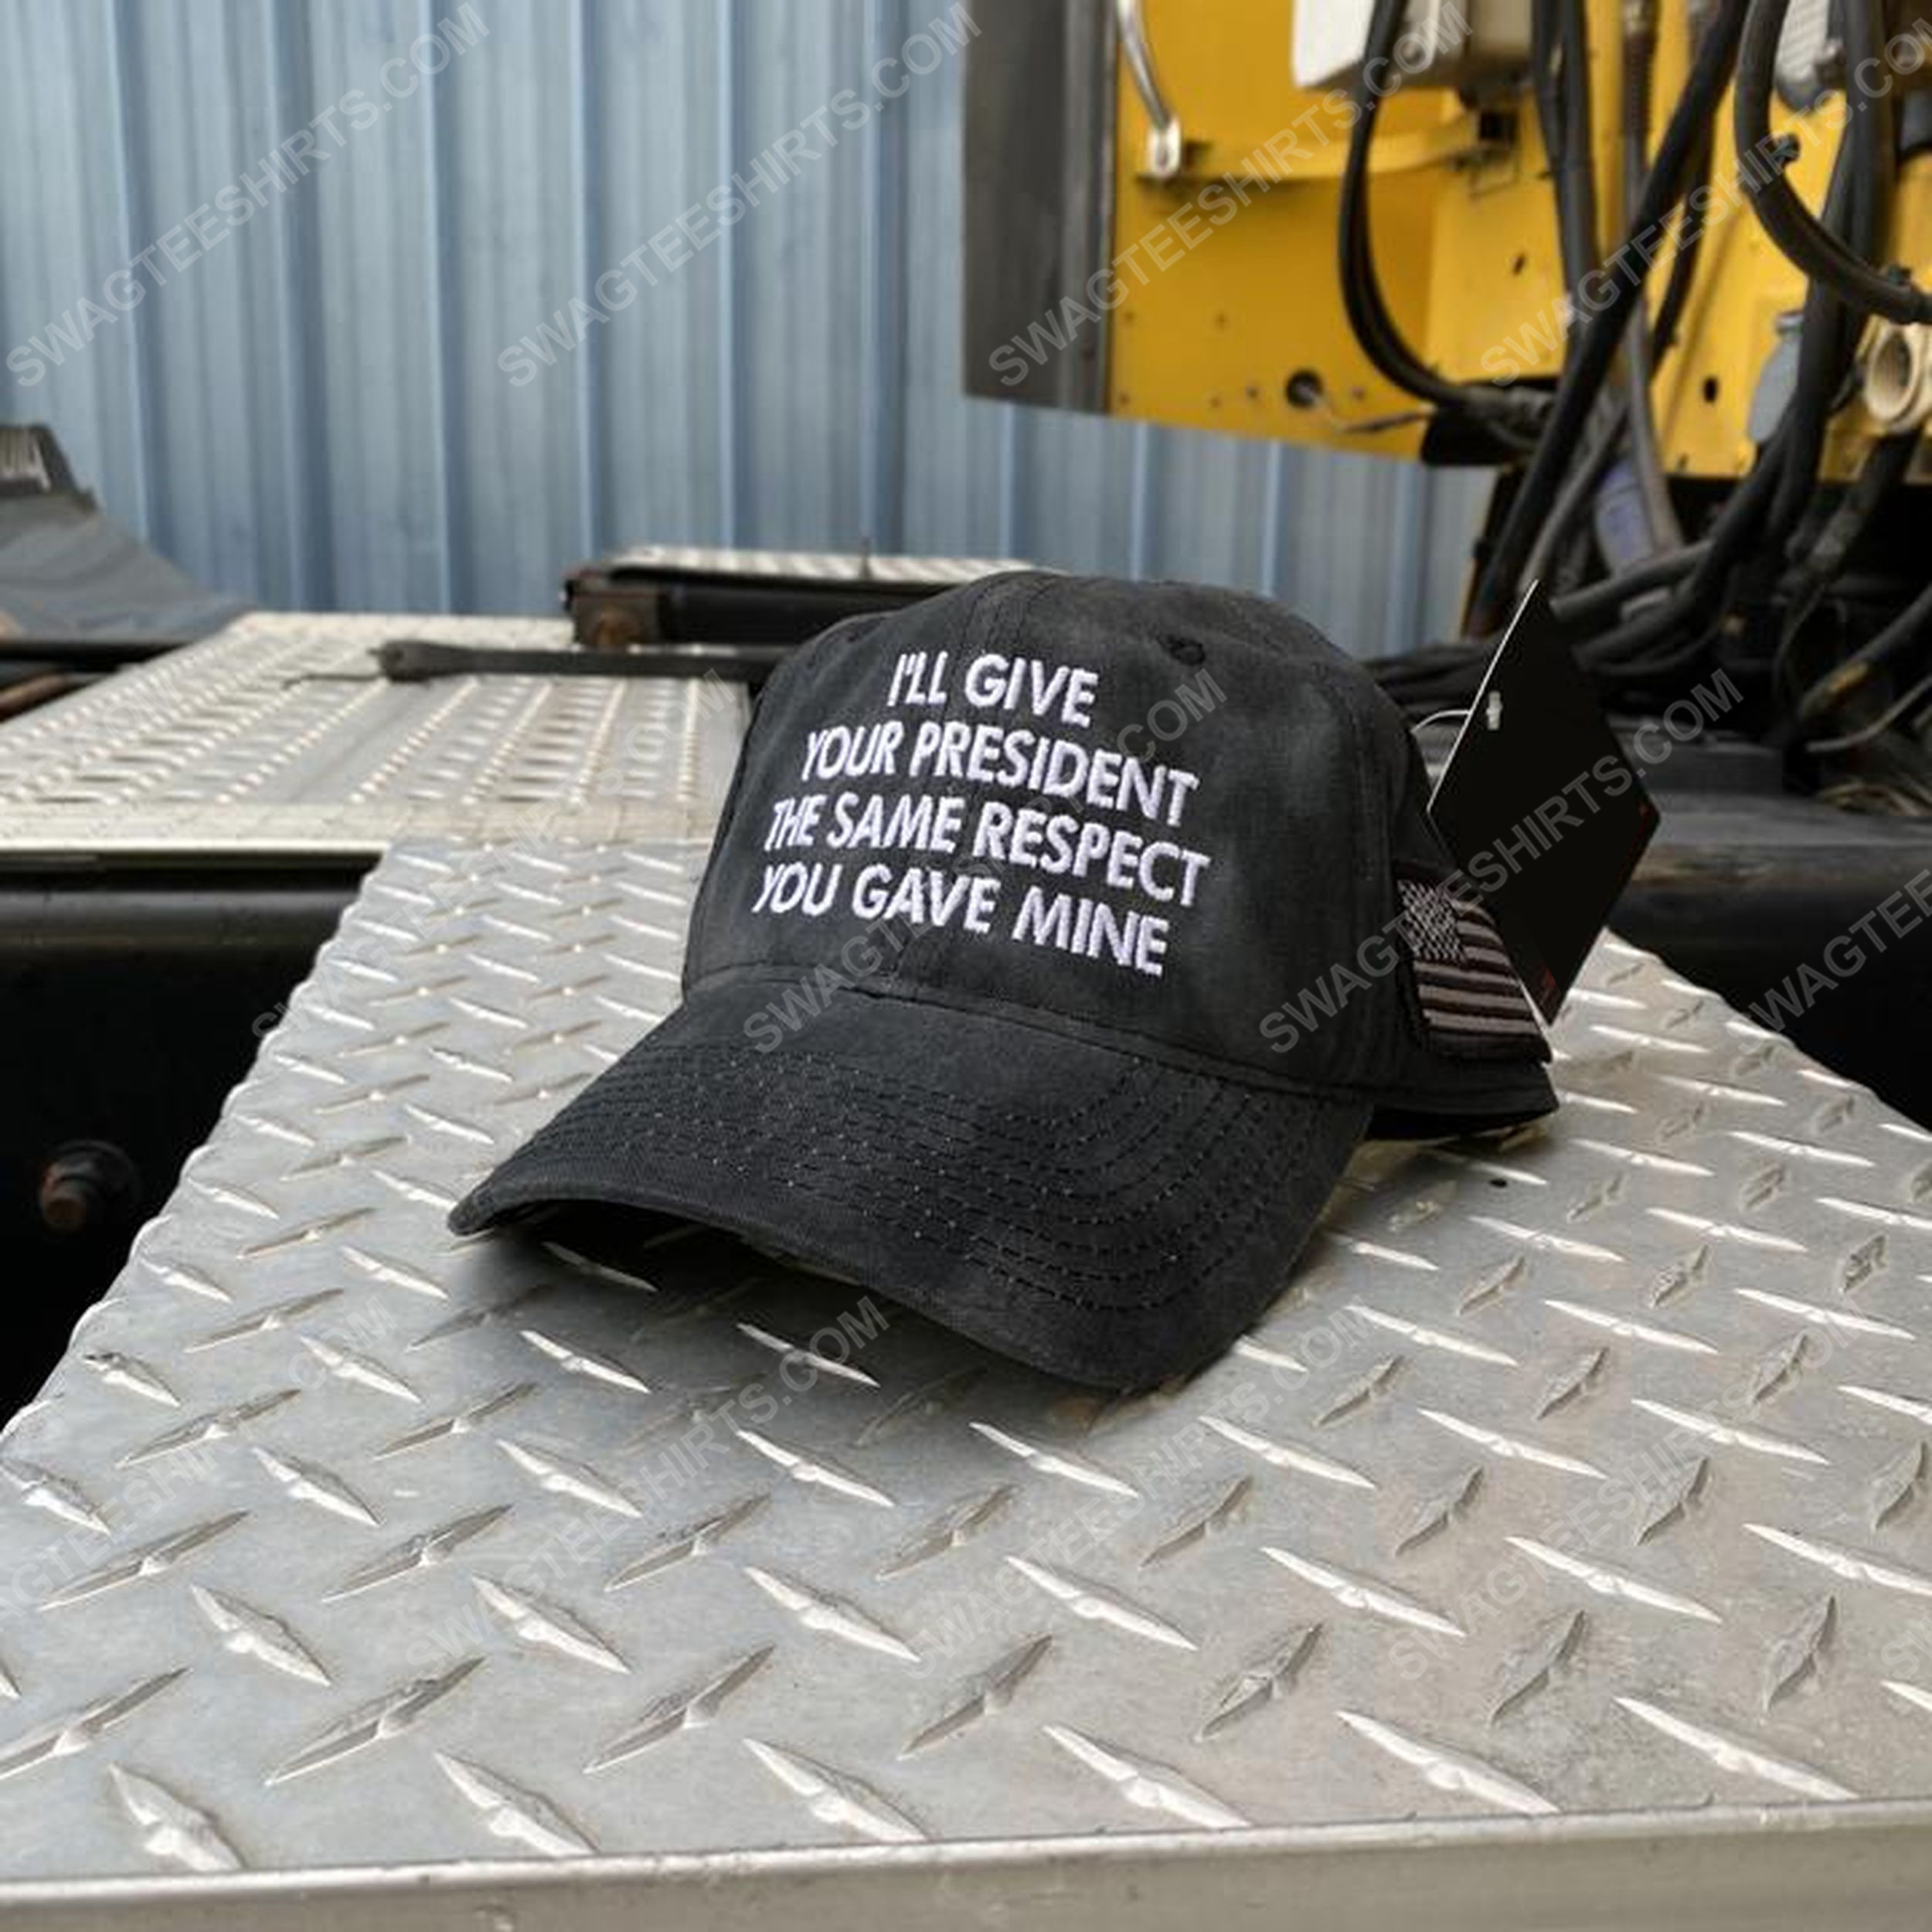 I'll give your president the same respect you gave mine full print classic hat 1 - Copy (2)